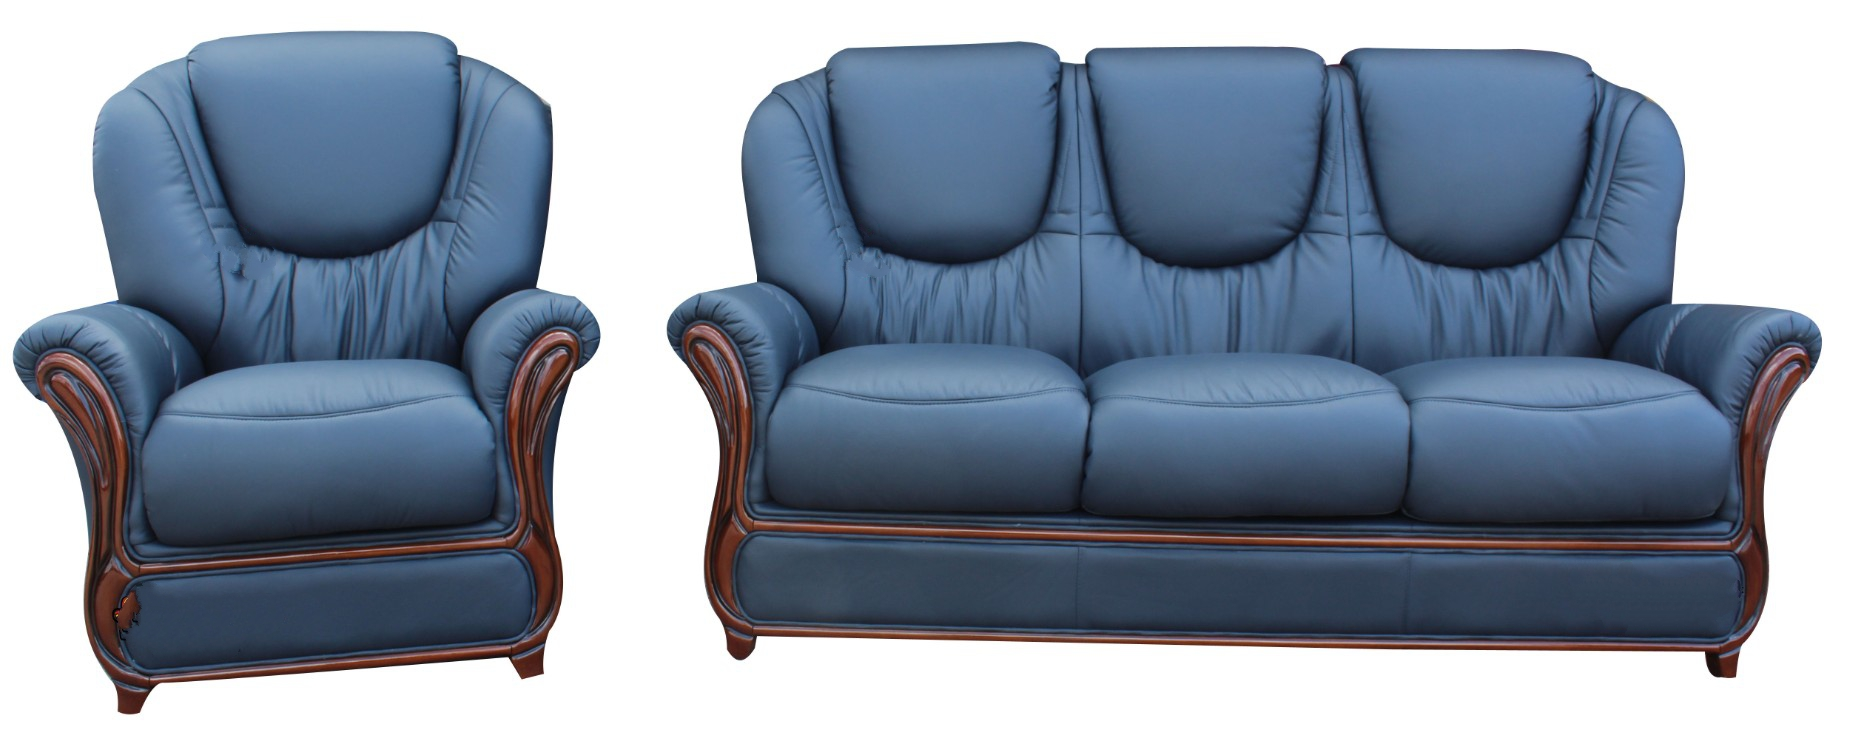 chesterfield leather sofa for sale italian sofas in hyderabad juliet-3-seater-armchair-sofa-suite-navy-blue-leather.jpg